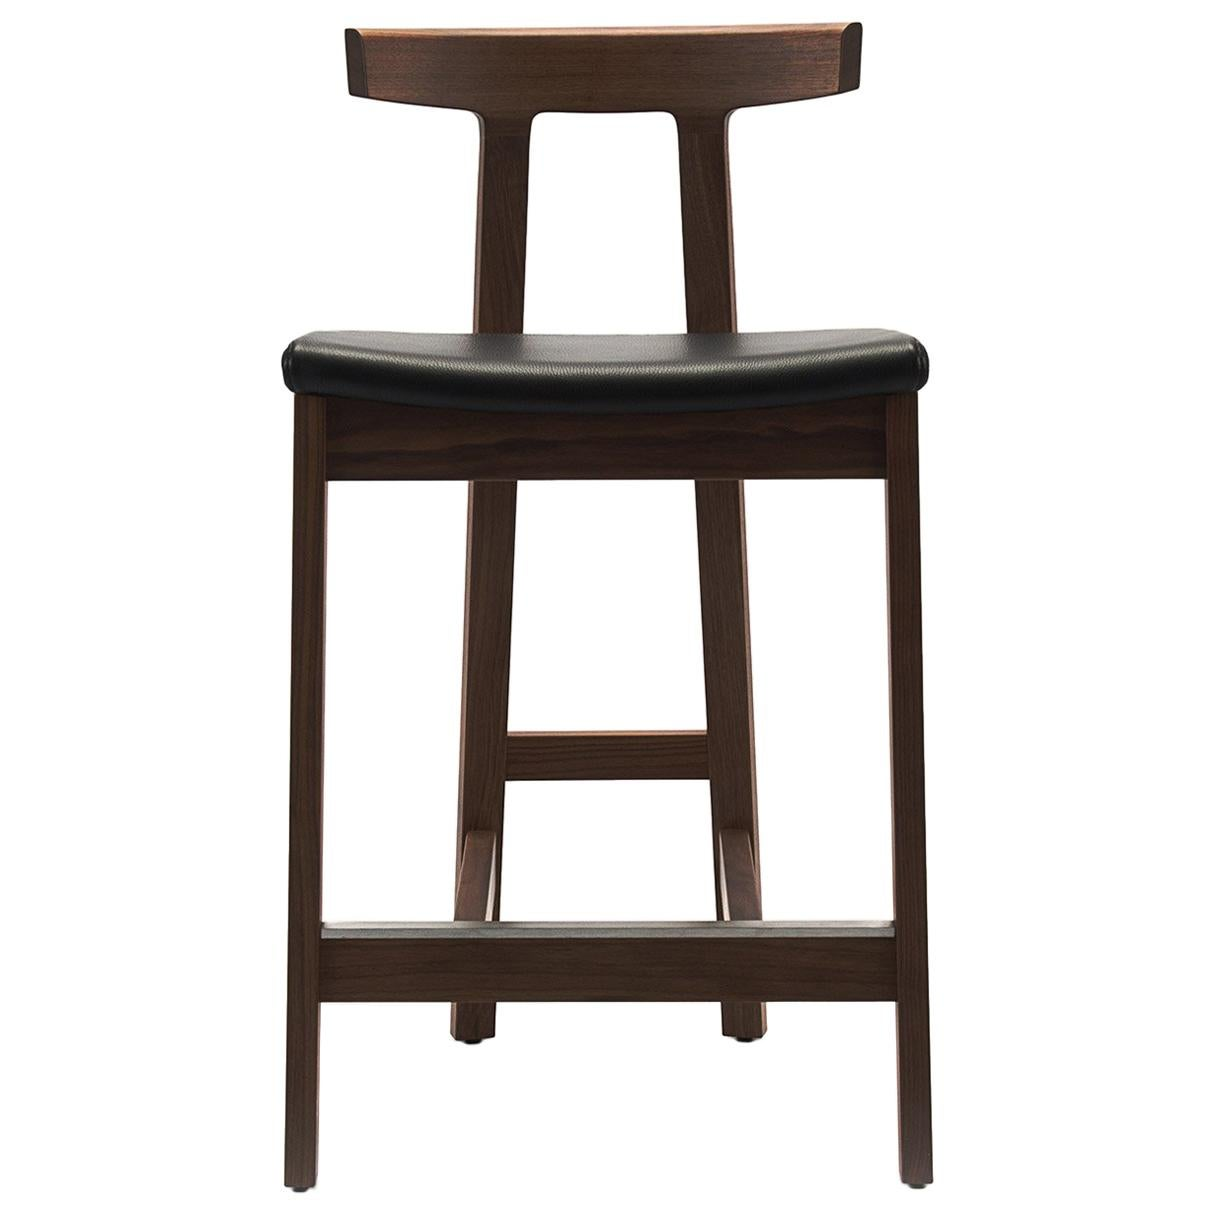 Surprising Gavilan Barstool Nickel With Walnut Details And Chocolate Brown Leather Andrewgaddart Wooden Chair Designs For Living Room Andrewgaddartcom